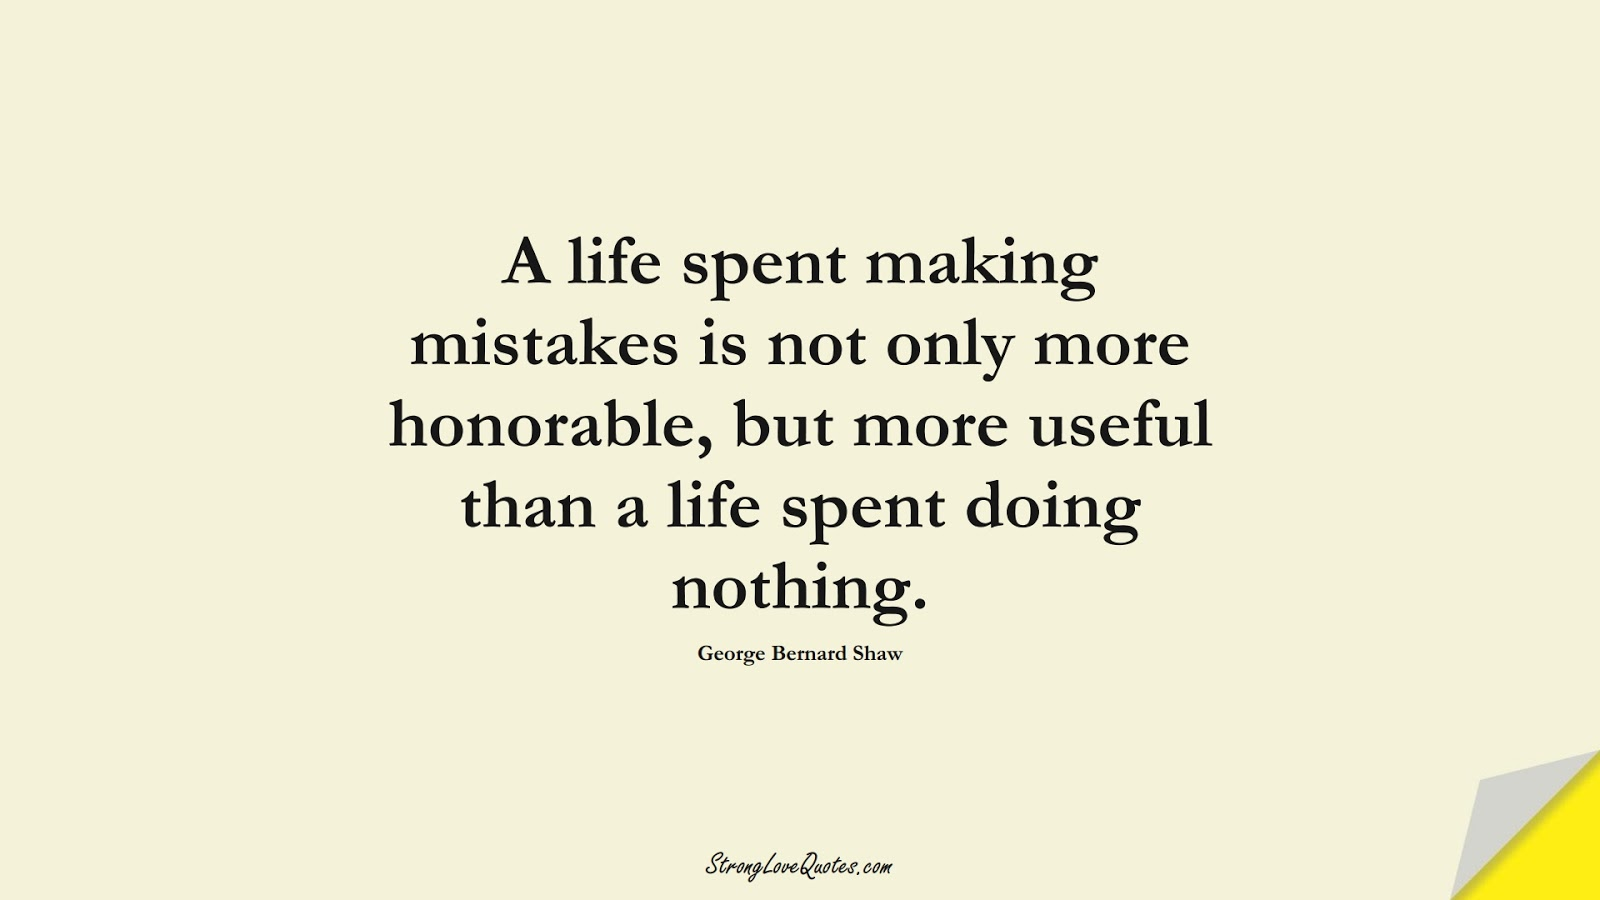 A life spent making mistakes is not only more honorable, but more useful than a life spent doing nothing. (George Bernard Shaw);  #LearningQuotes